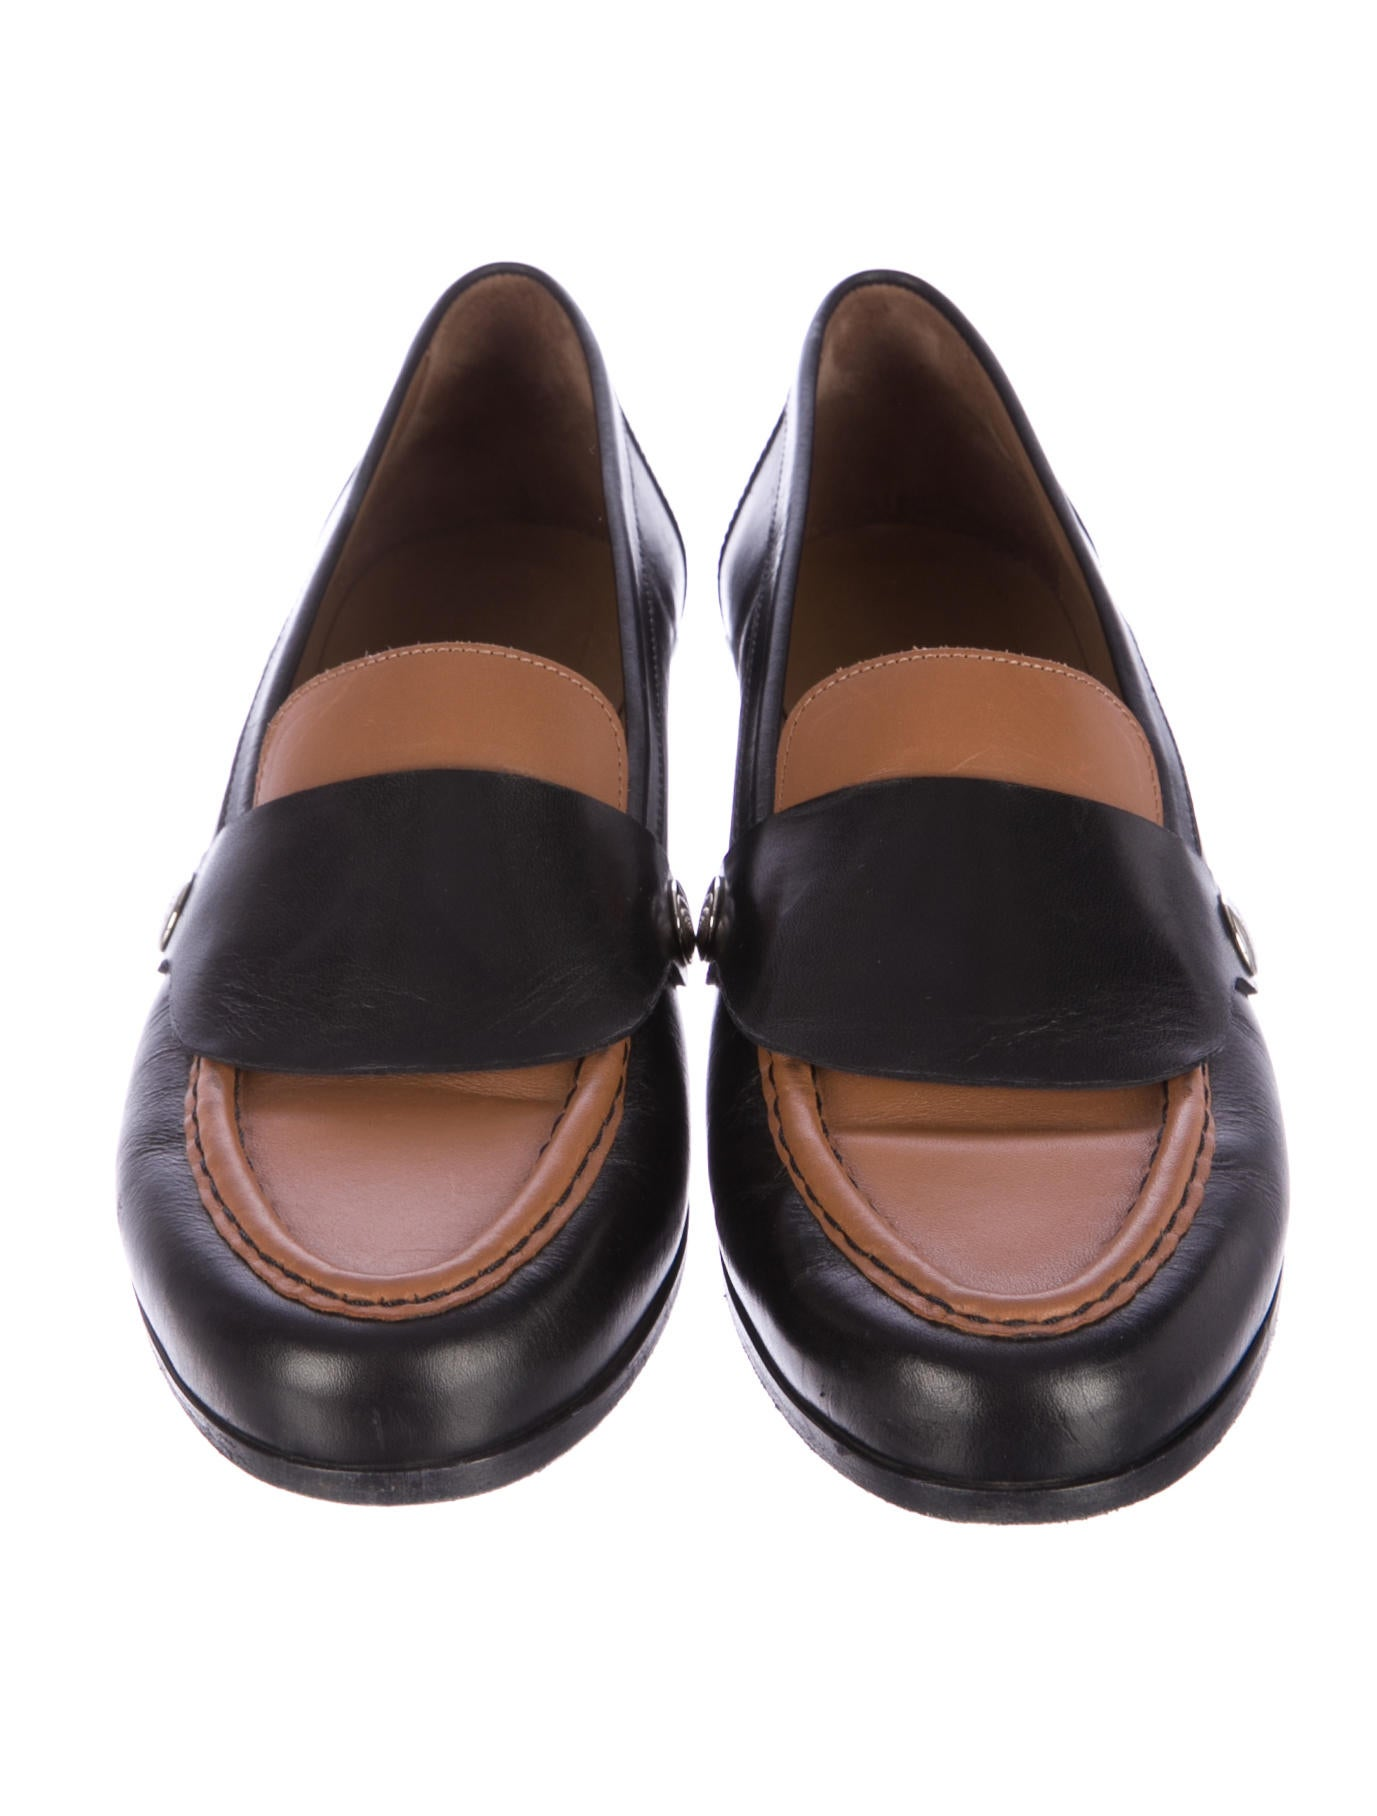 Hermu00e8s Leather Colorblock Loafers - Shoes - HER54236 | The ...